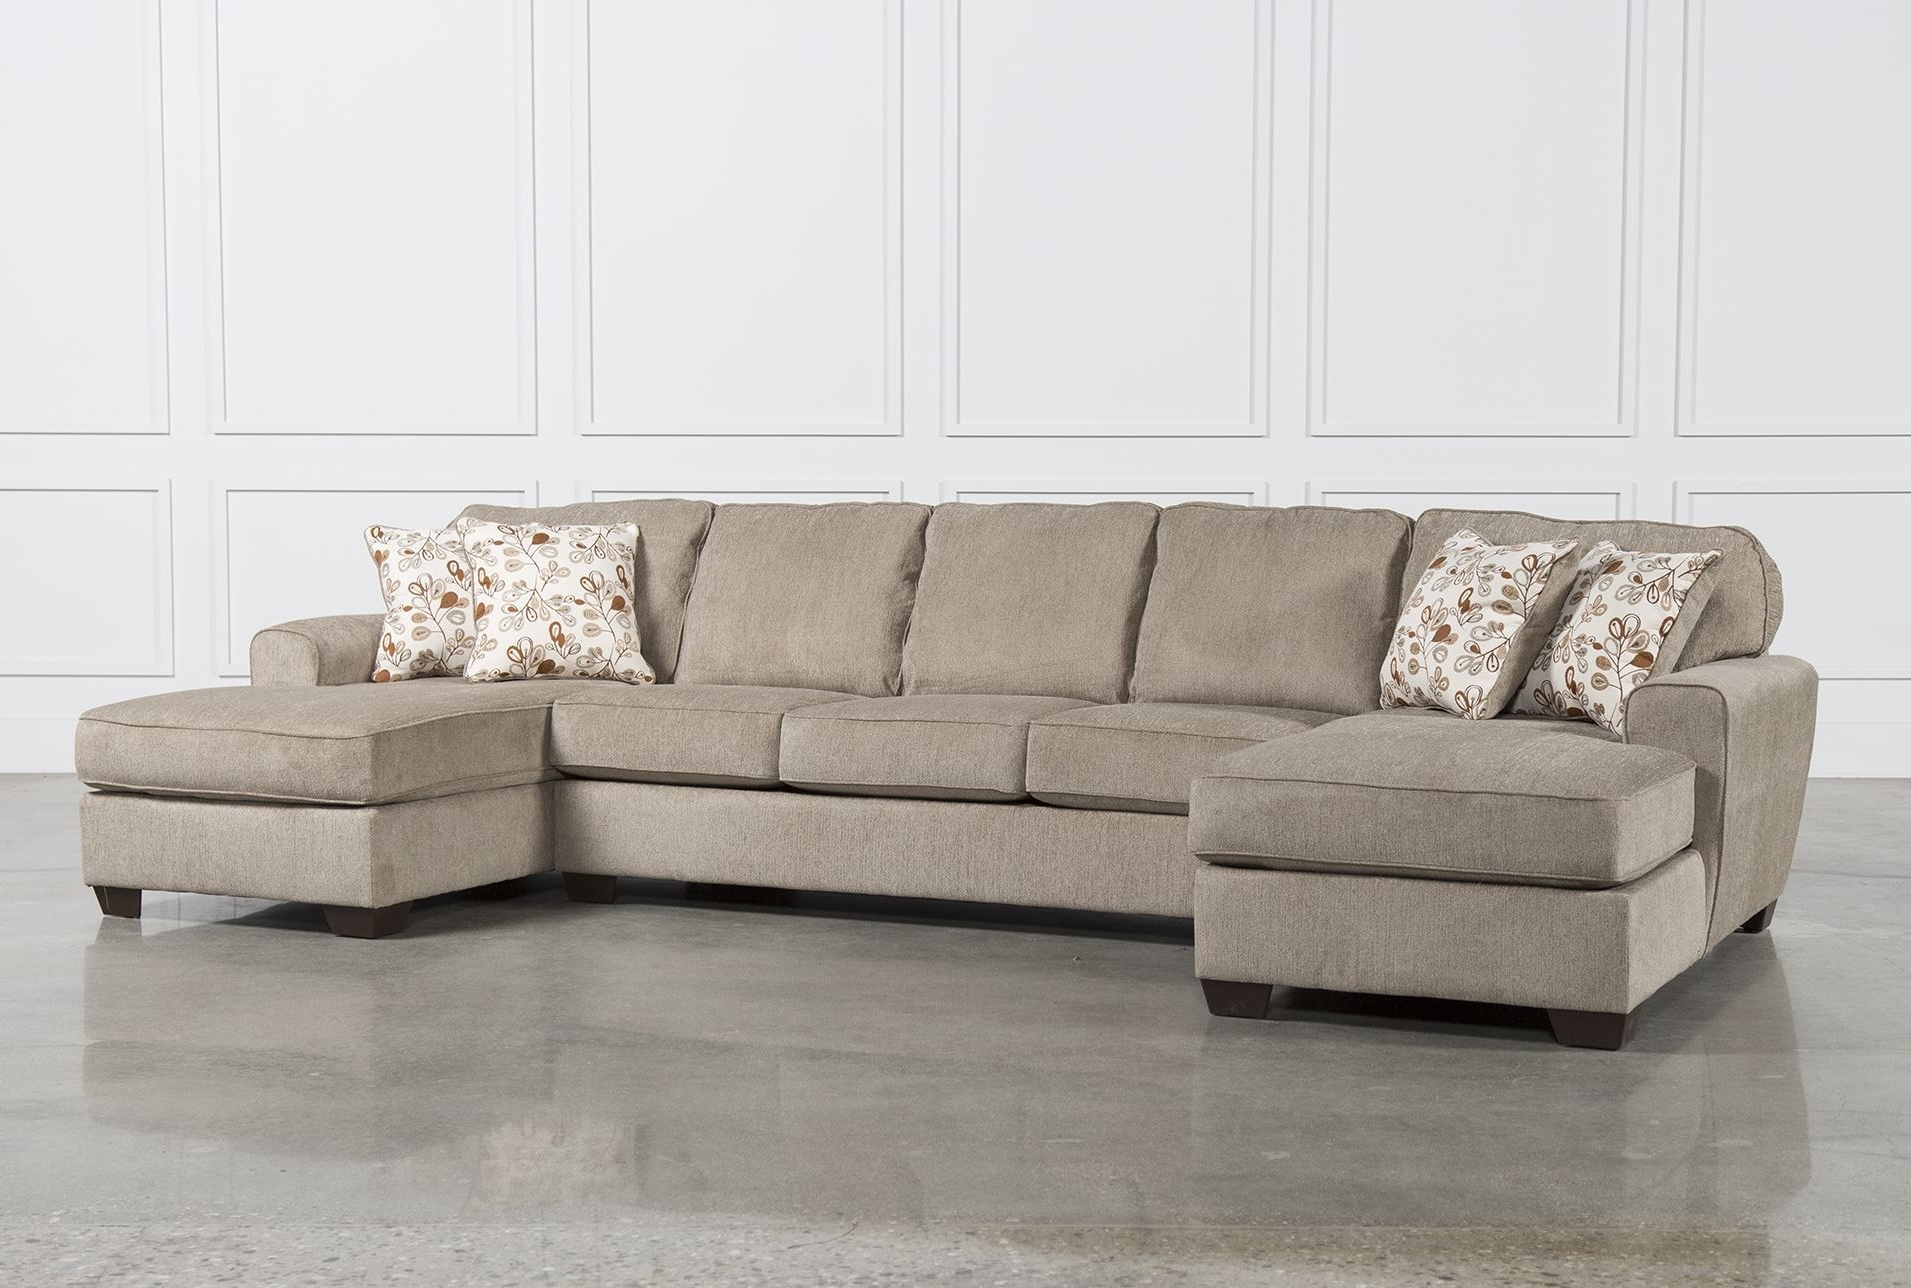 Dual Chaise Sectionals With Regard To Fashionable Popular Sectional Sofa With 2 Chaises 26 For Sectional Sofas (View 10 of 15)